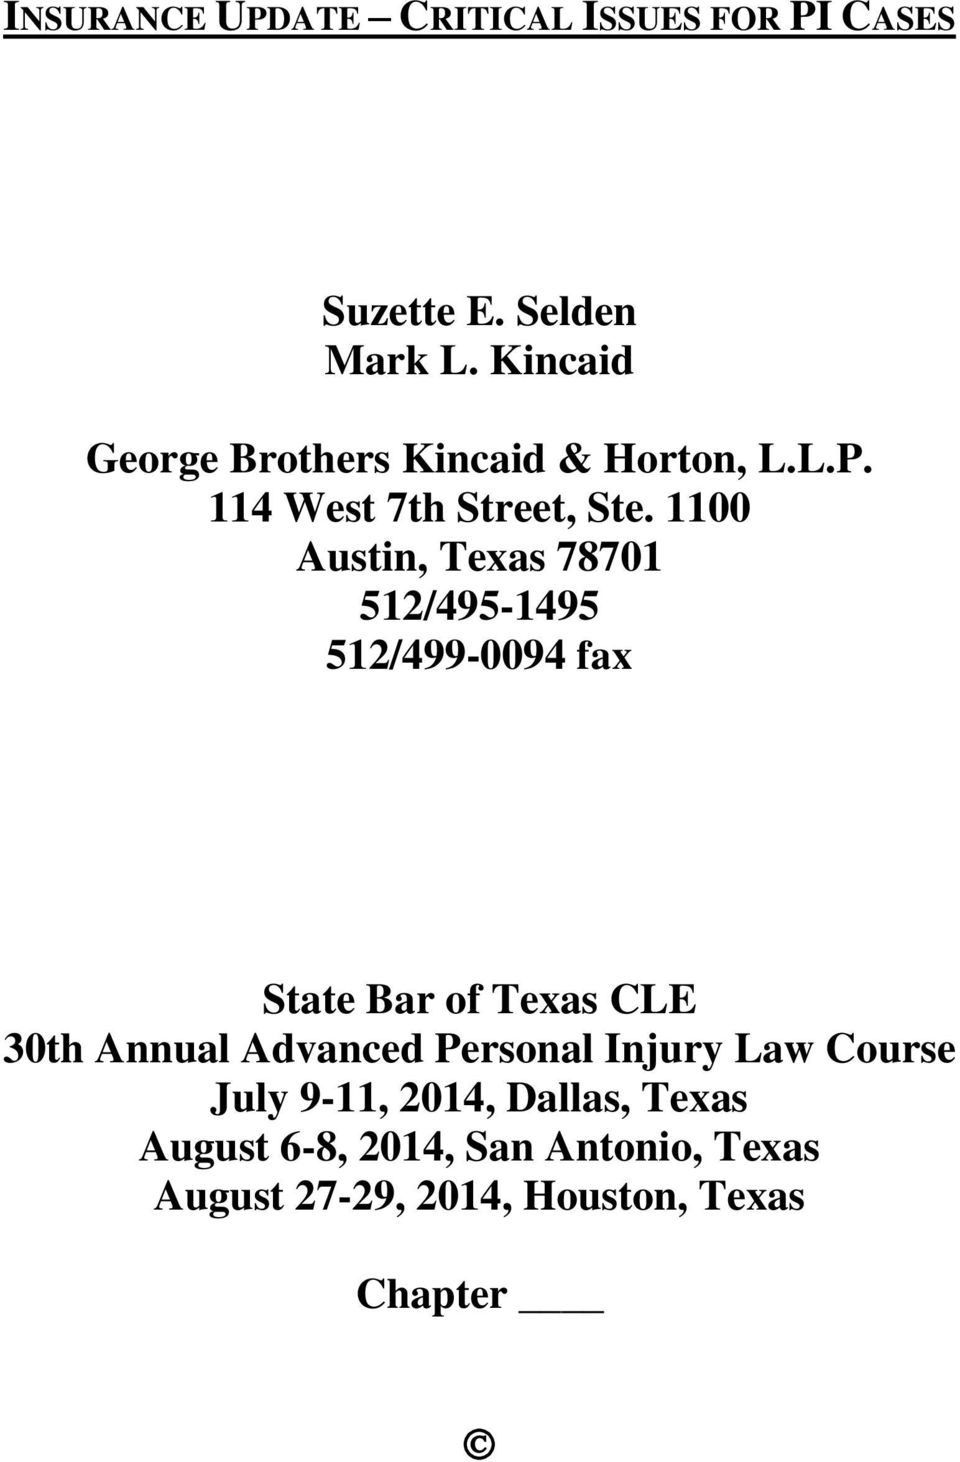 1100 Austin, Texas 78701 512/495-1495 512/499-0094 fax State Bar of Texas CLE 30th